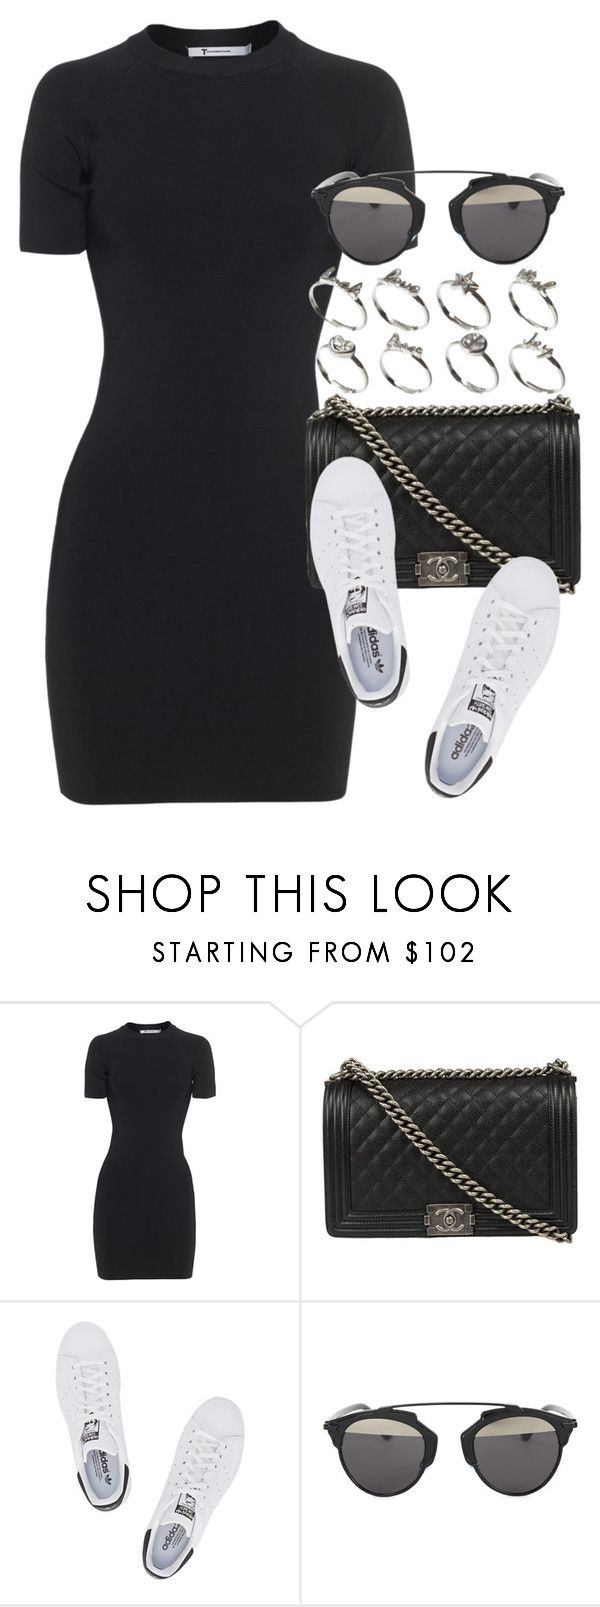 """""""Style #10007"""" by vany-alvarado ❤ liked on Polyvore featuring T By Alexander Wang, Chanel, adidas Originals, Christian Dior and ASOS"""